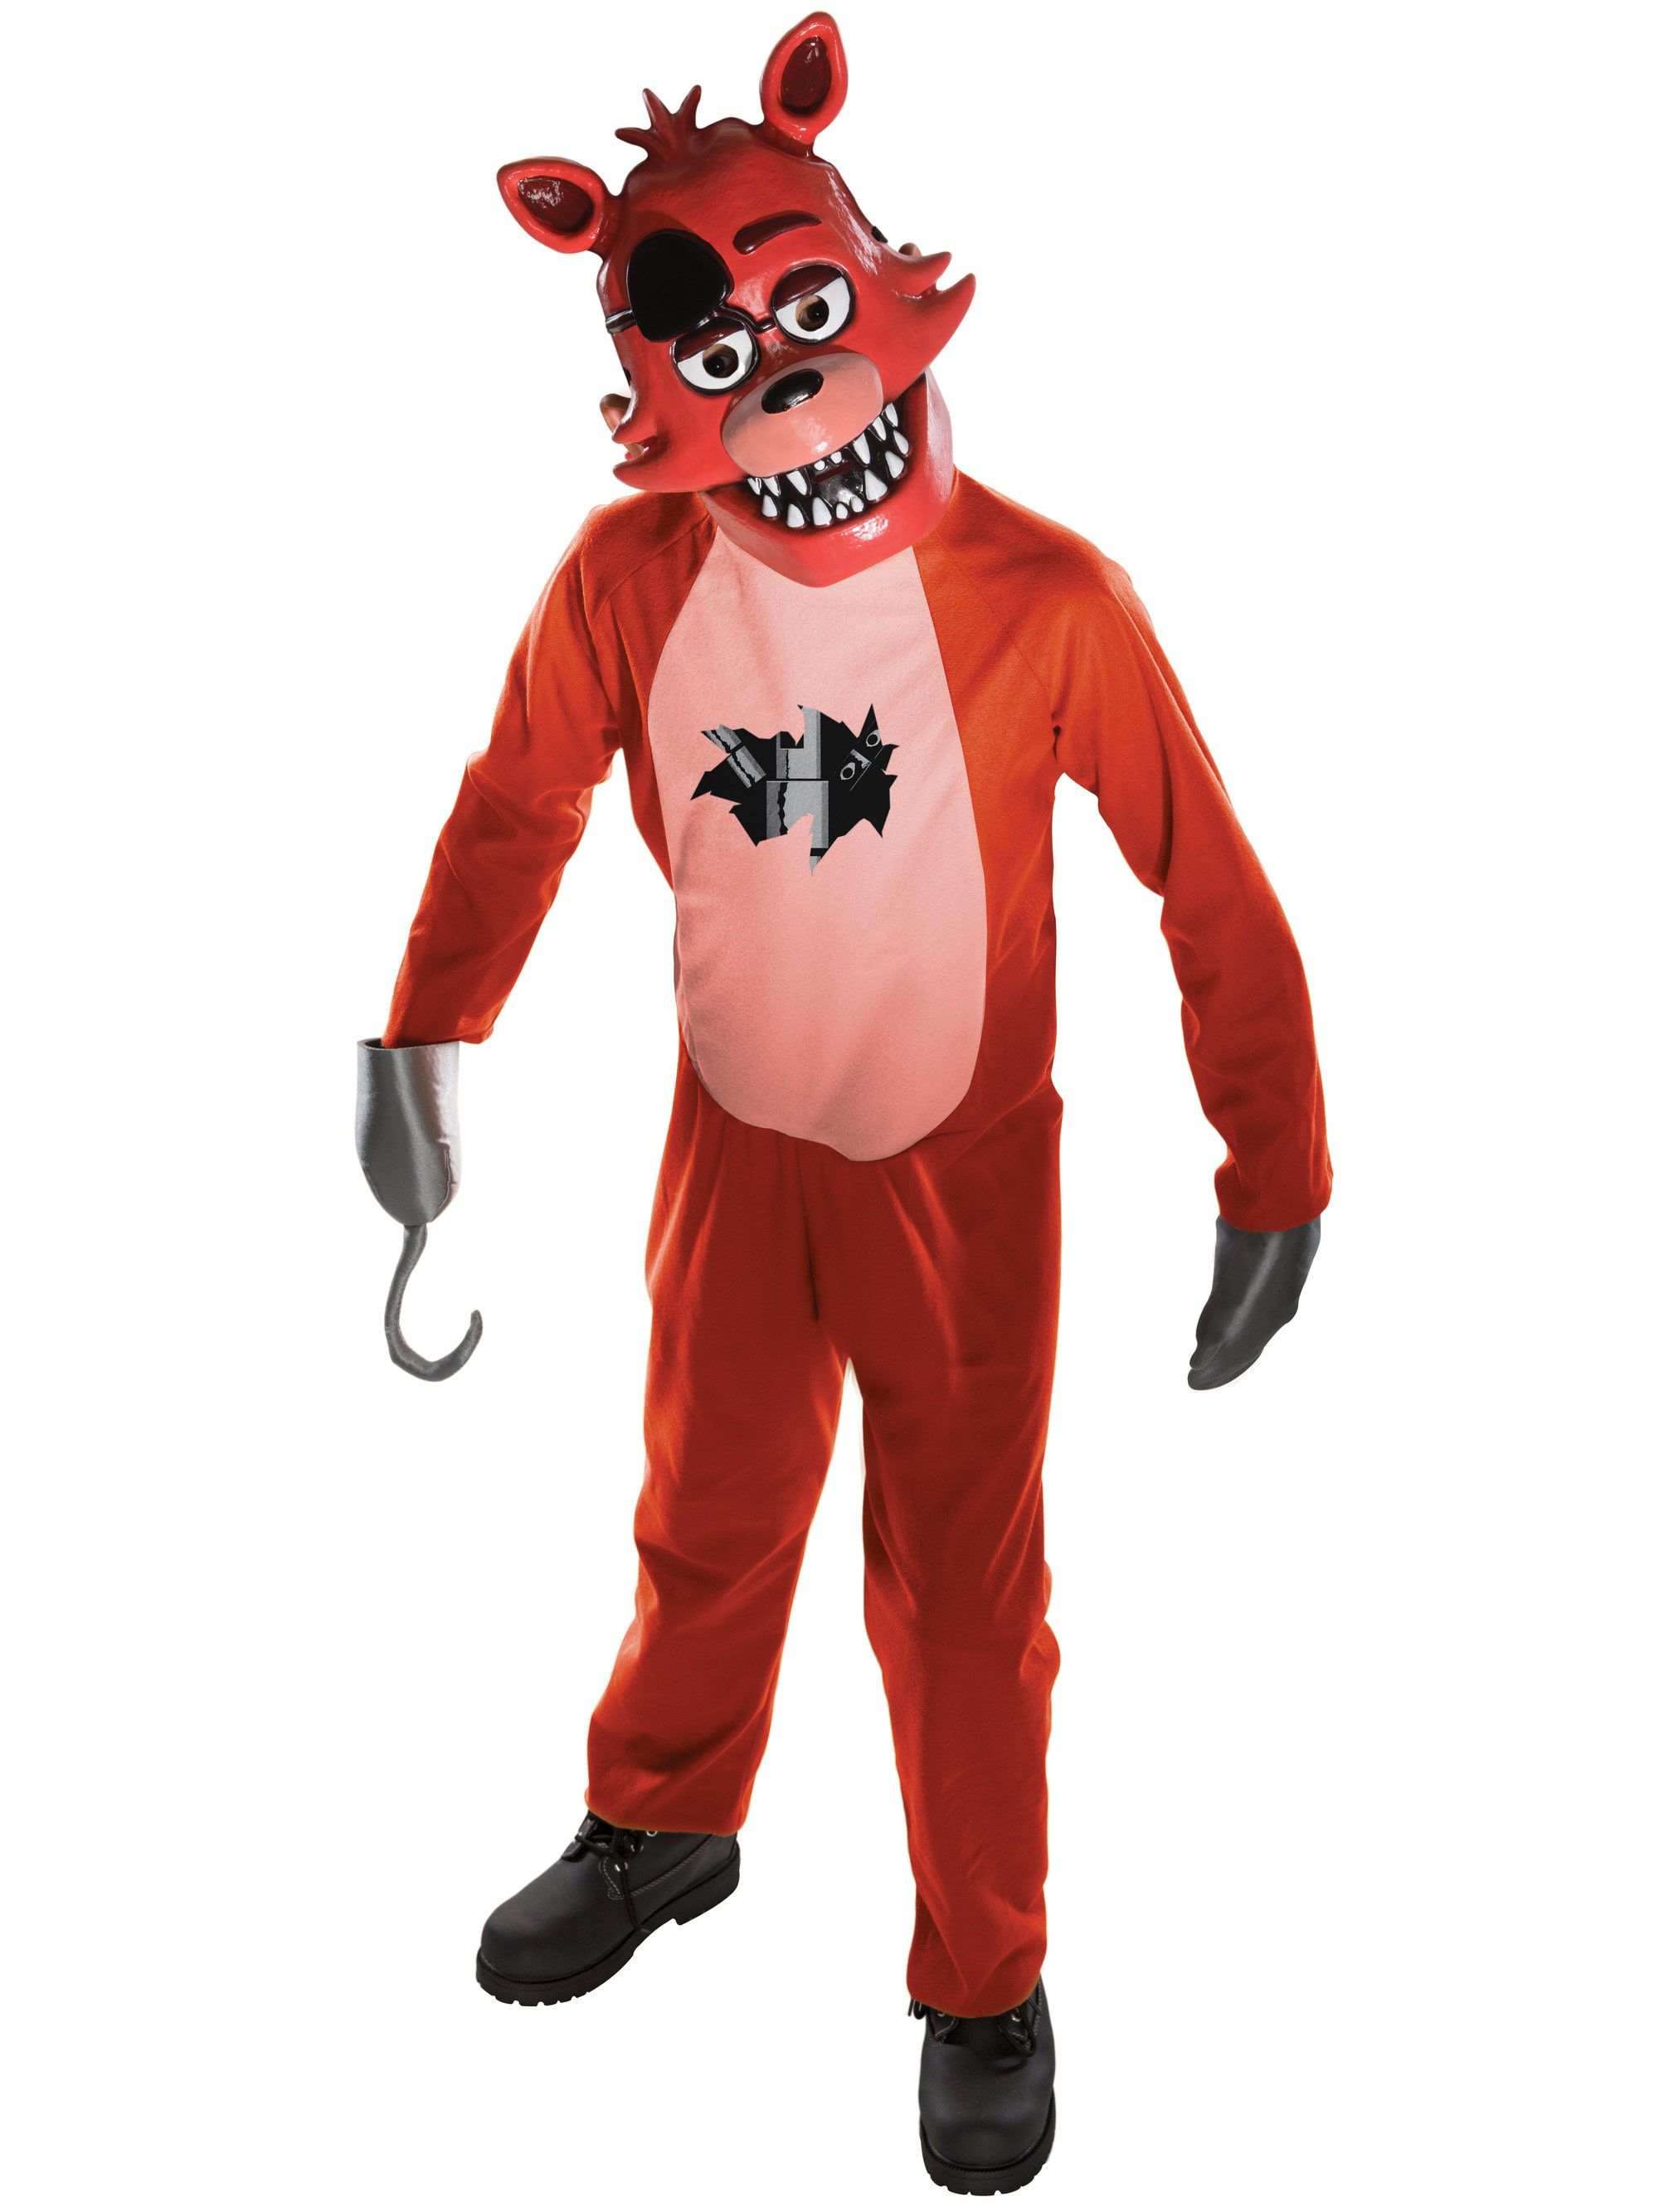 Kids Five Nights at Freddy's Foxy Costume | Five Nights at Freddy's